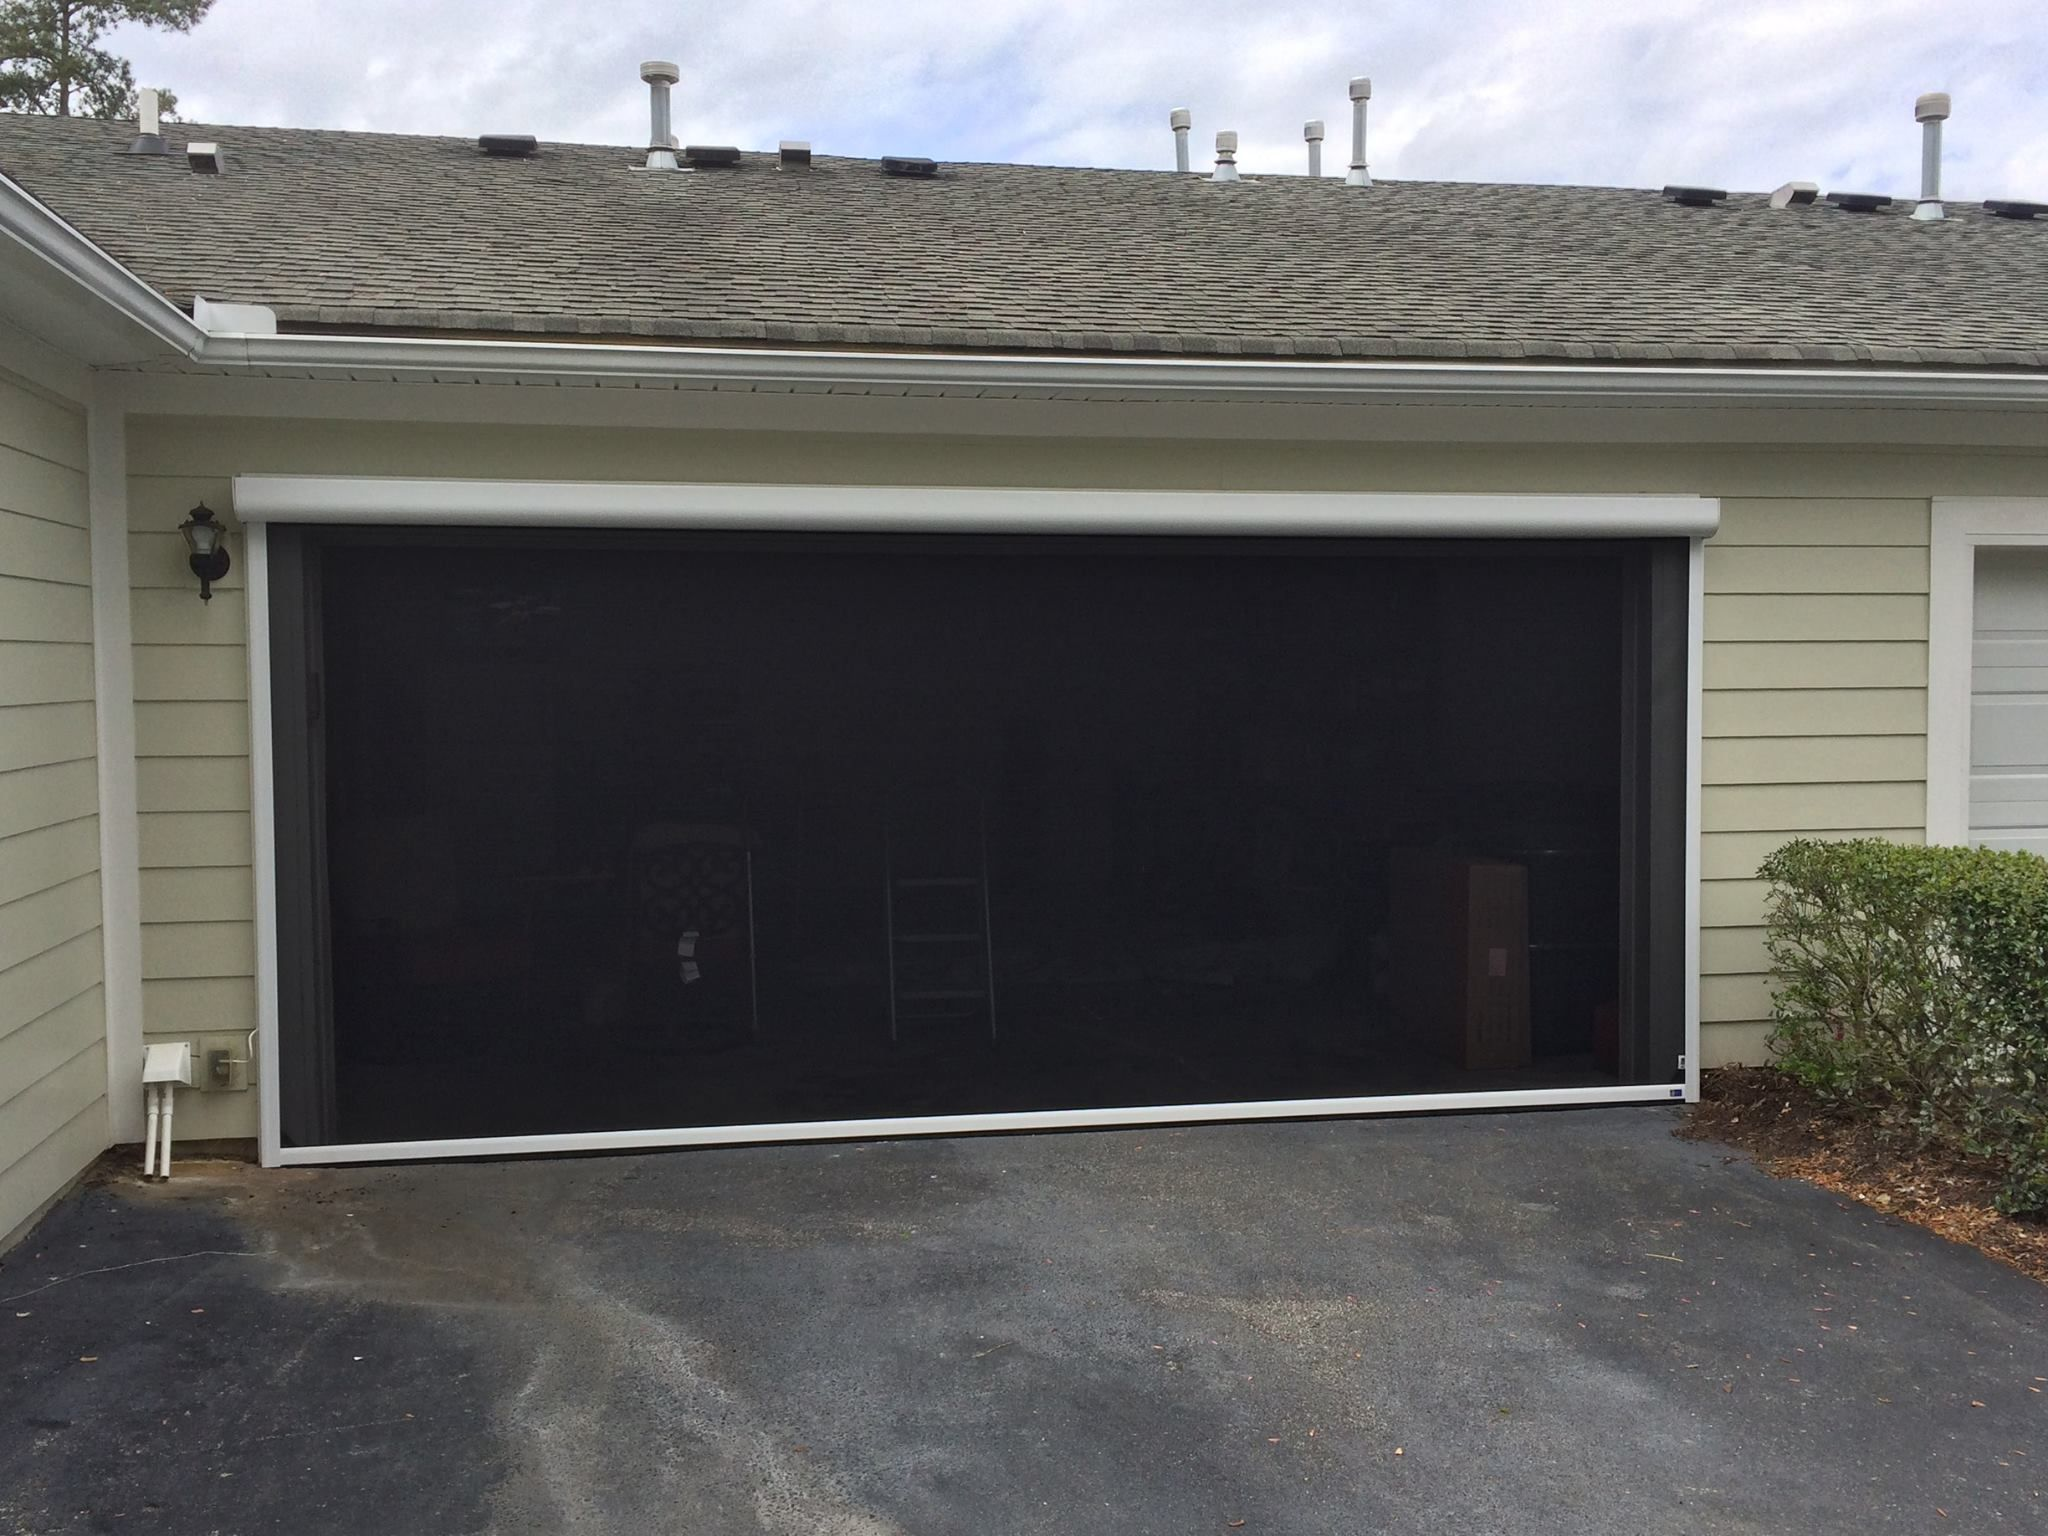 Turn Your Garage Into A Man Cave By Adding A Motorized Bug Screen Or Privacy Screen Bug Screen Screen Door Garage